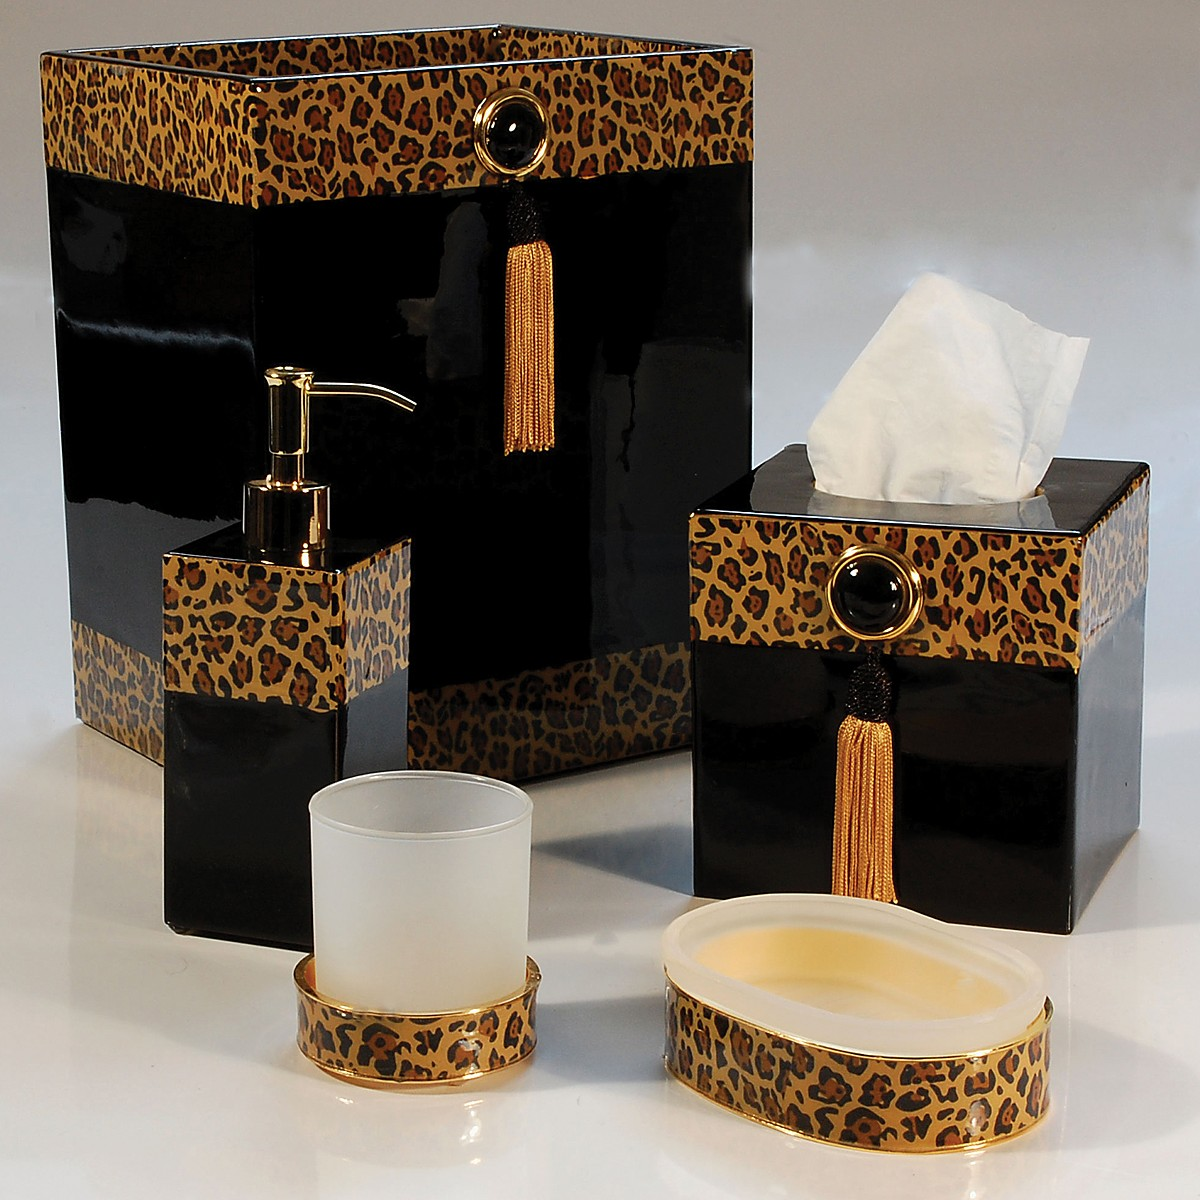 leopard print bathroom accessories leopard print